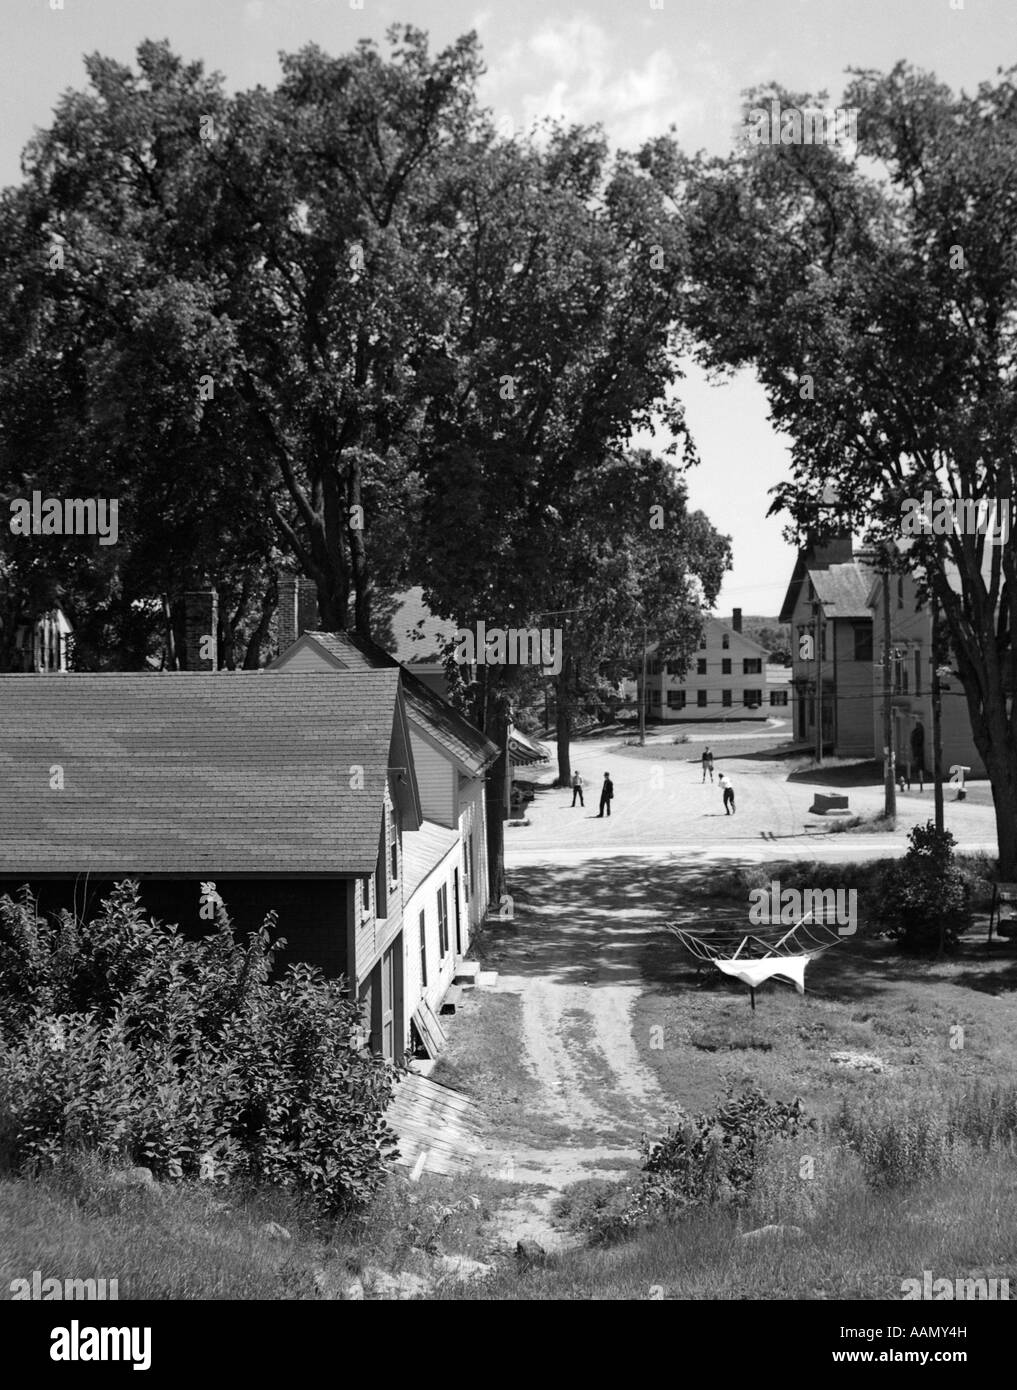 1930s VIEW OF SMALL TOWN NEW ENGLAND SMALL TOWN SUMMER SCENE QUIET VILLAGE VEAZIE NEAR BANGOR MAINE USA - Stock Image